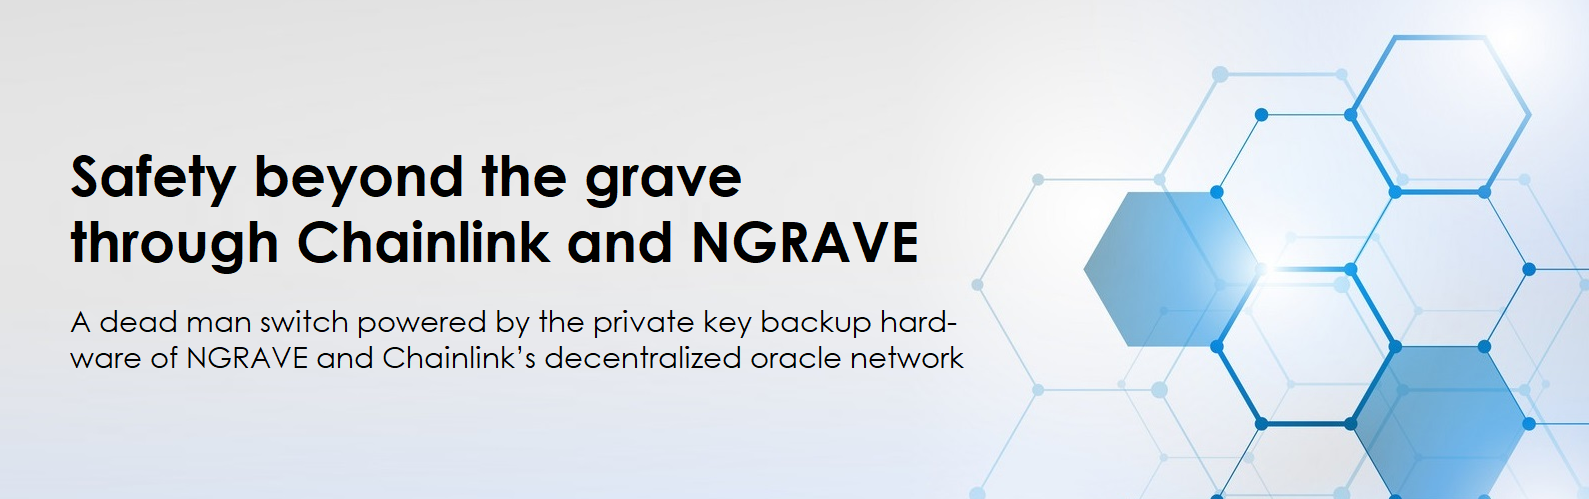 Safety beyond the grave through Chainlink and NGRAVE. A dead man switch powered by NGRAVE ZERO, GRAPHENE, & Chainlink Oracle.